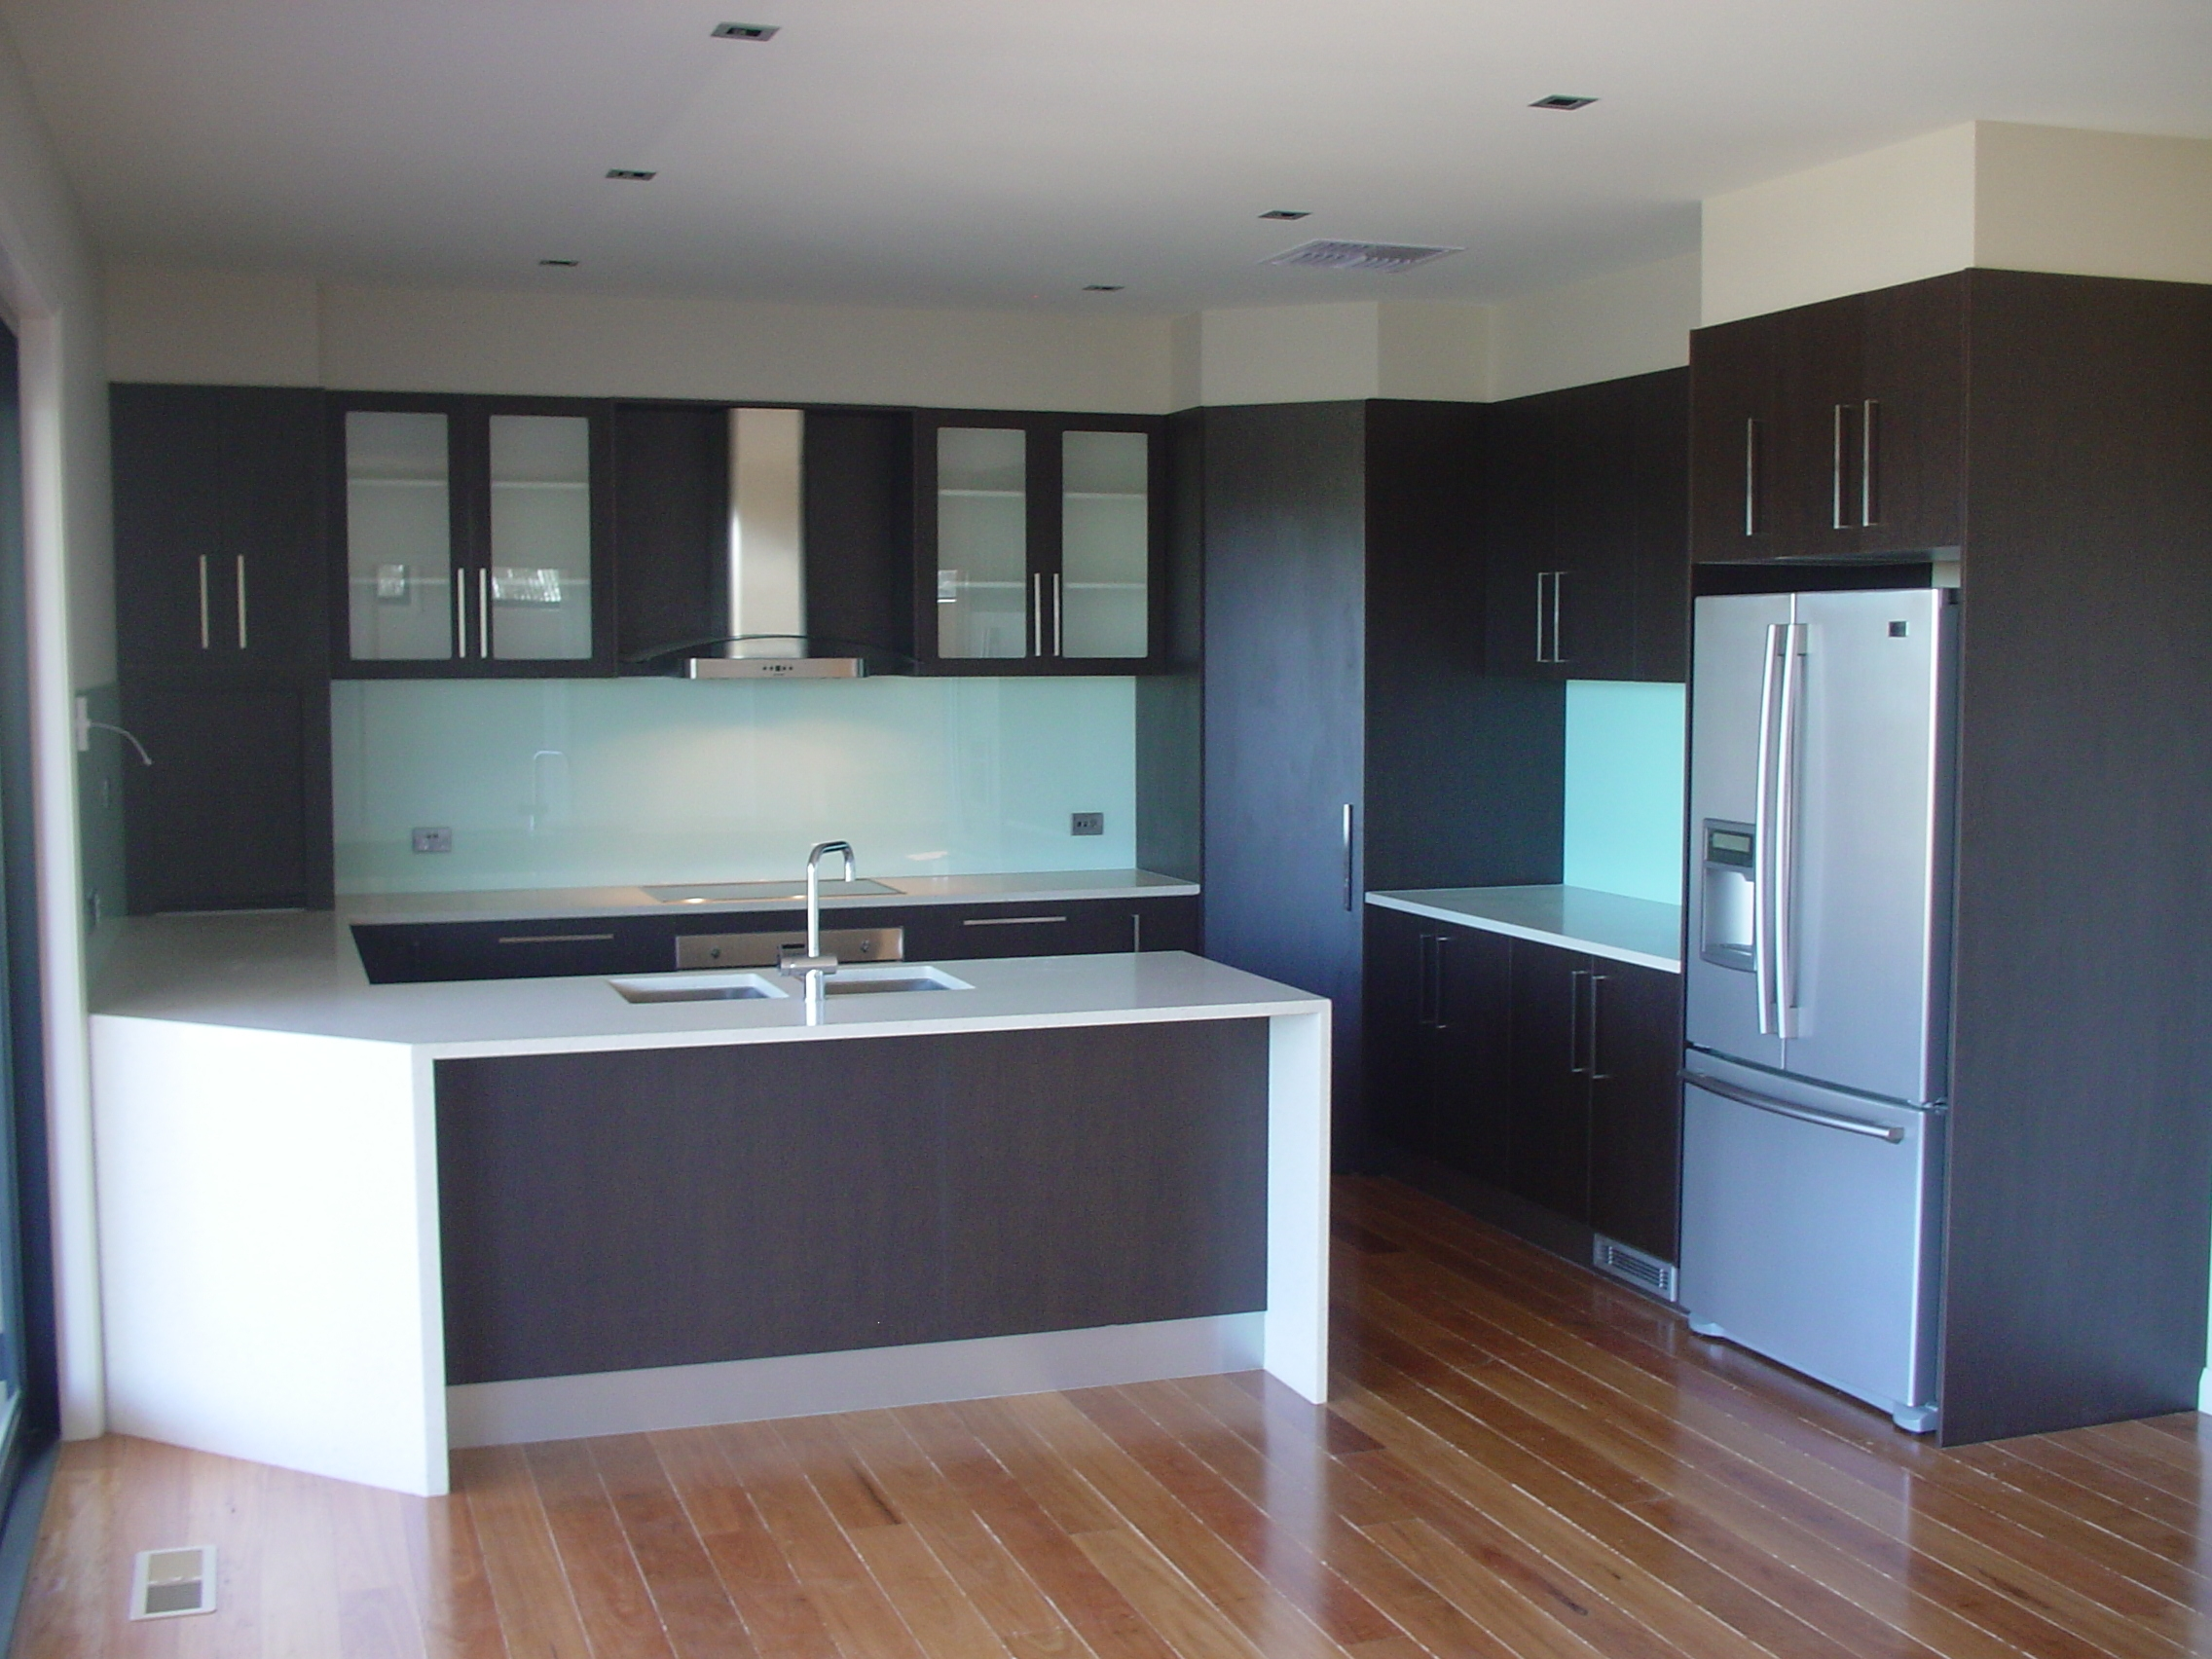 Permalink to Best Laminate For Kitchen Cabinets